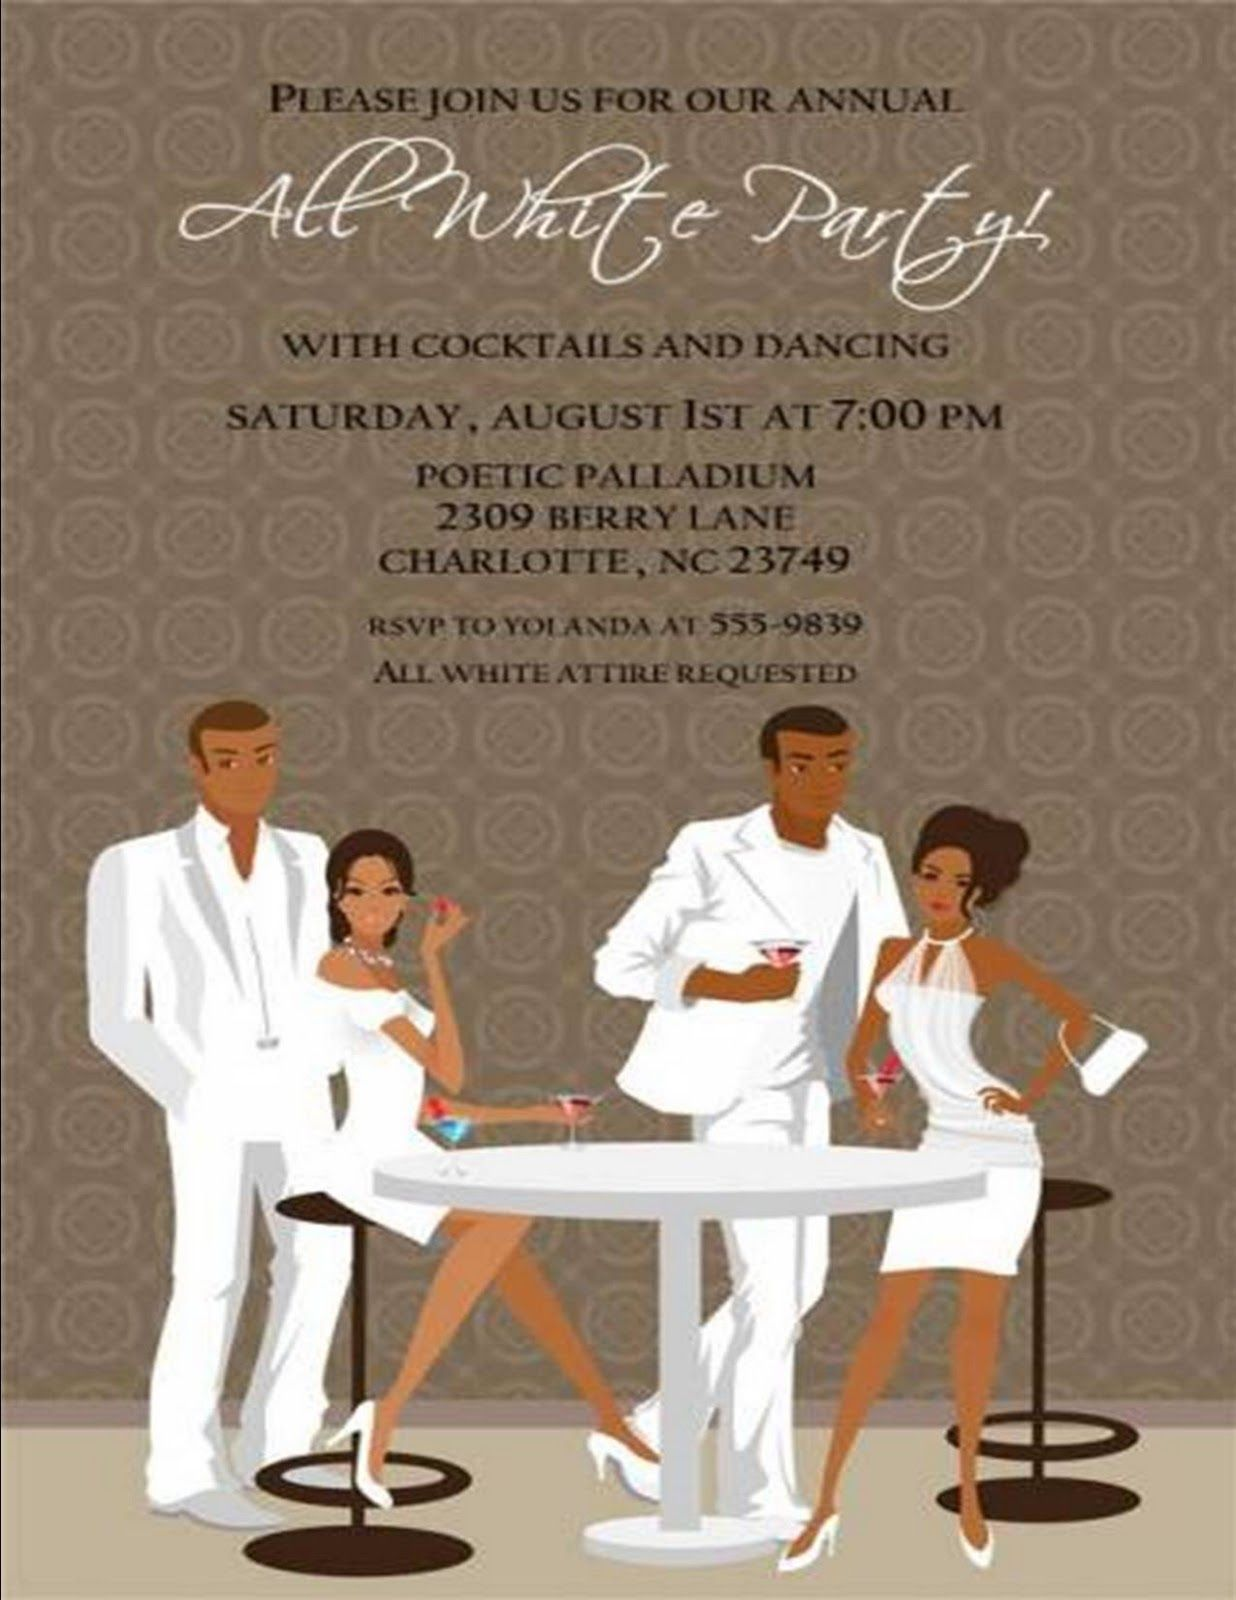 CoolNew Create Own All White Party Invitations Free Invitations - All white party invitations templates